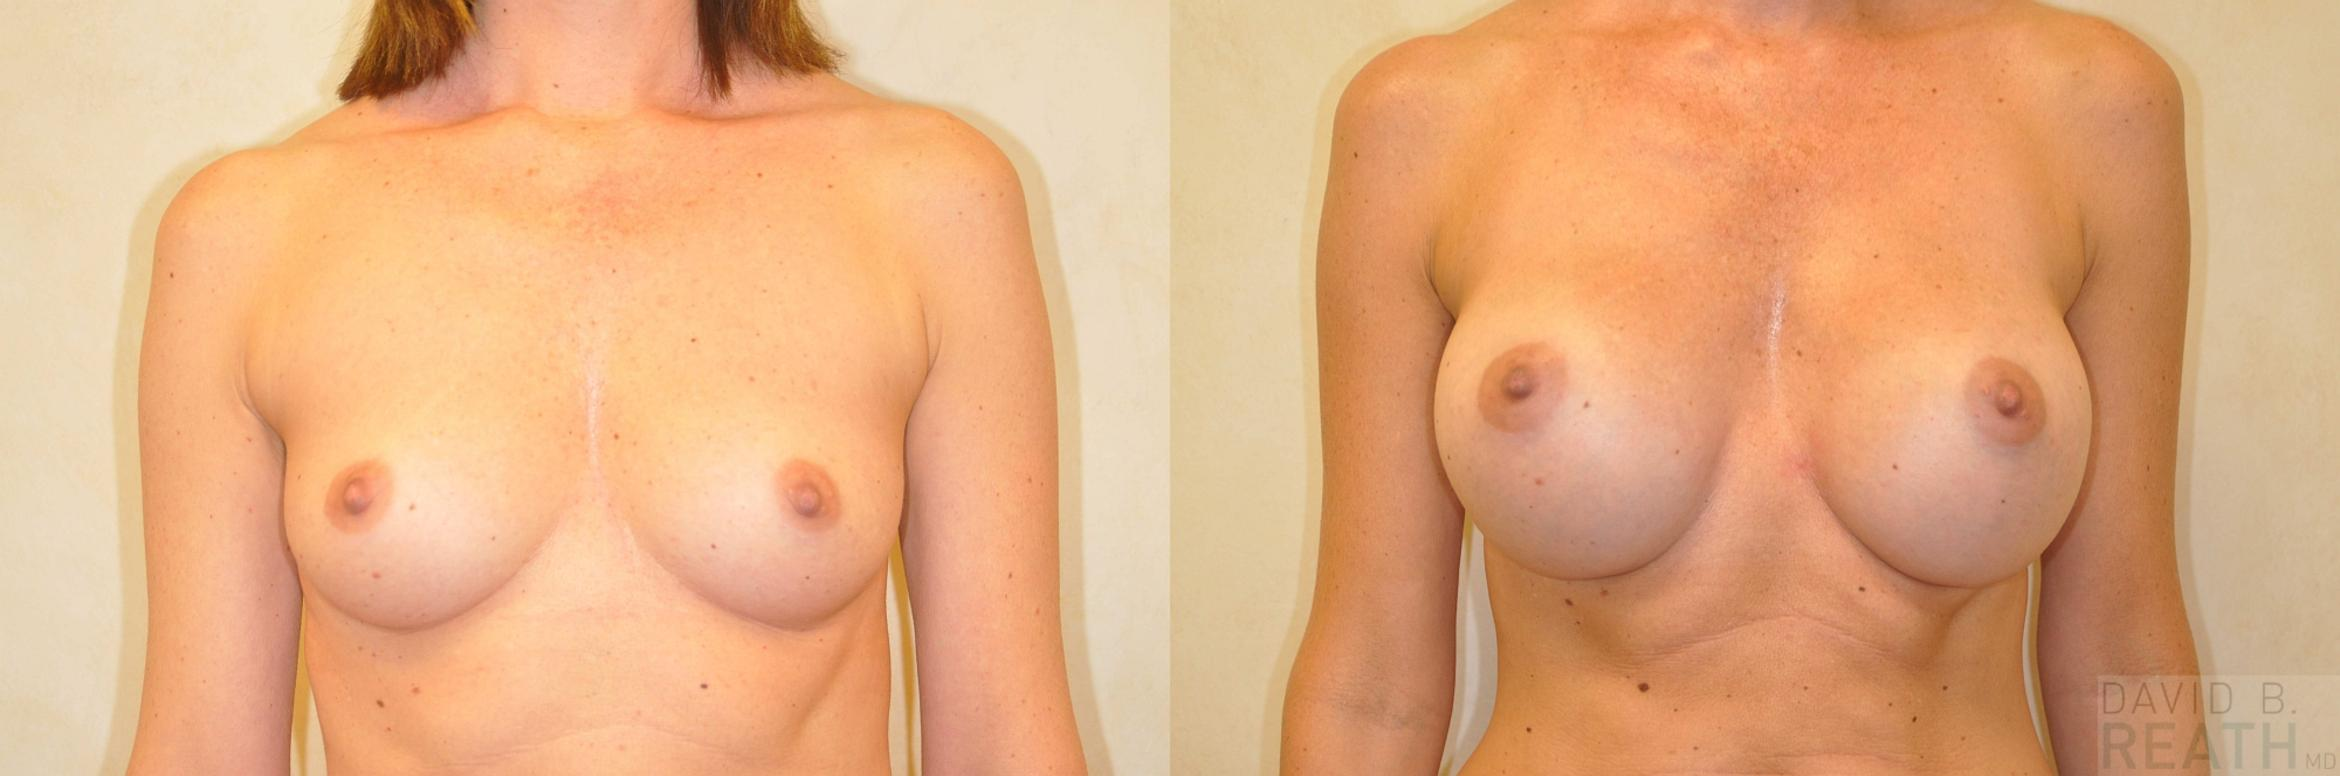 Breast Augmentation (Saline) Before & After Photo | Knoxville, Tennessee | David B. Reath, MD